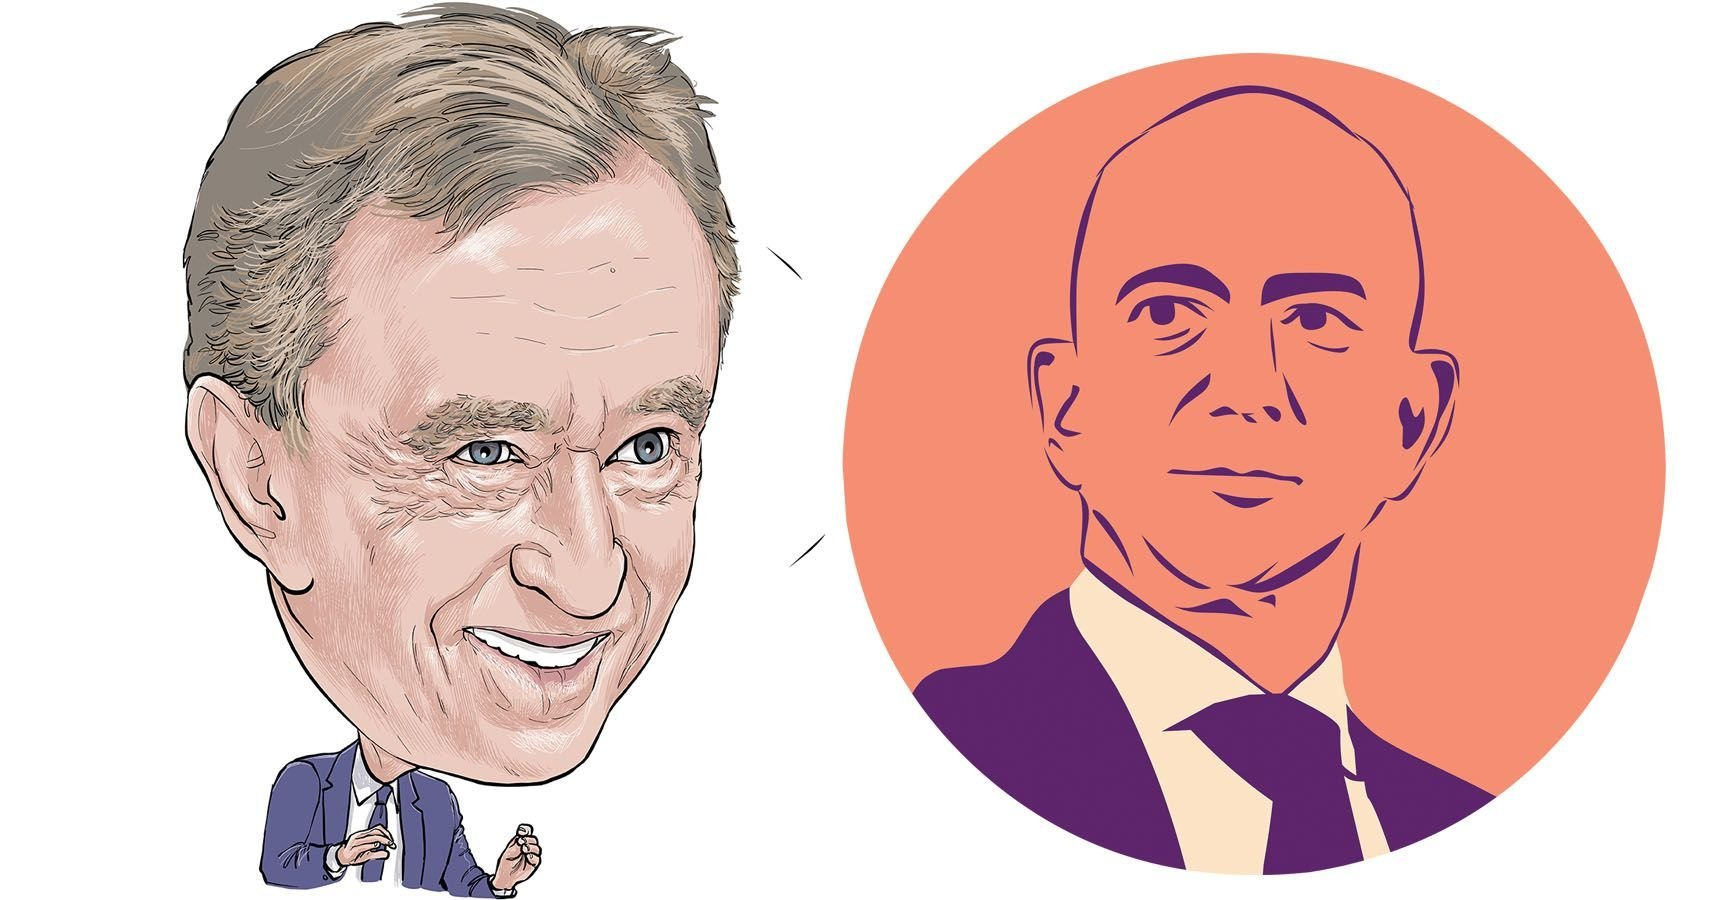 Who Is Bernard Arnault? He Took Over Jeff Bezos To Become World's Richest Person